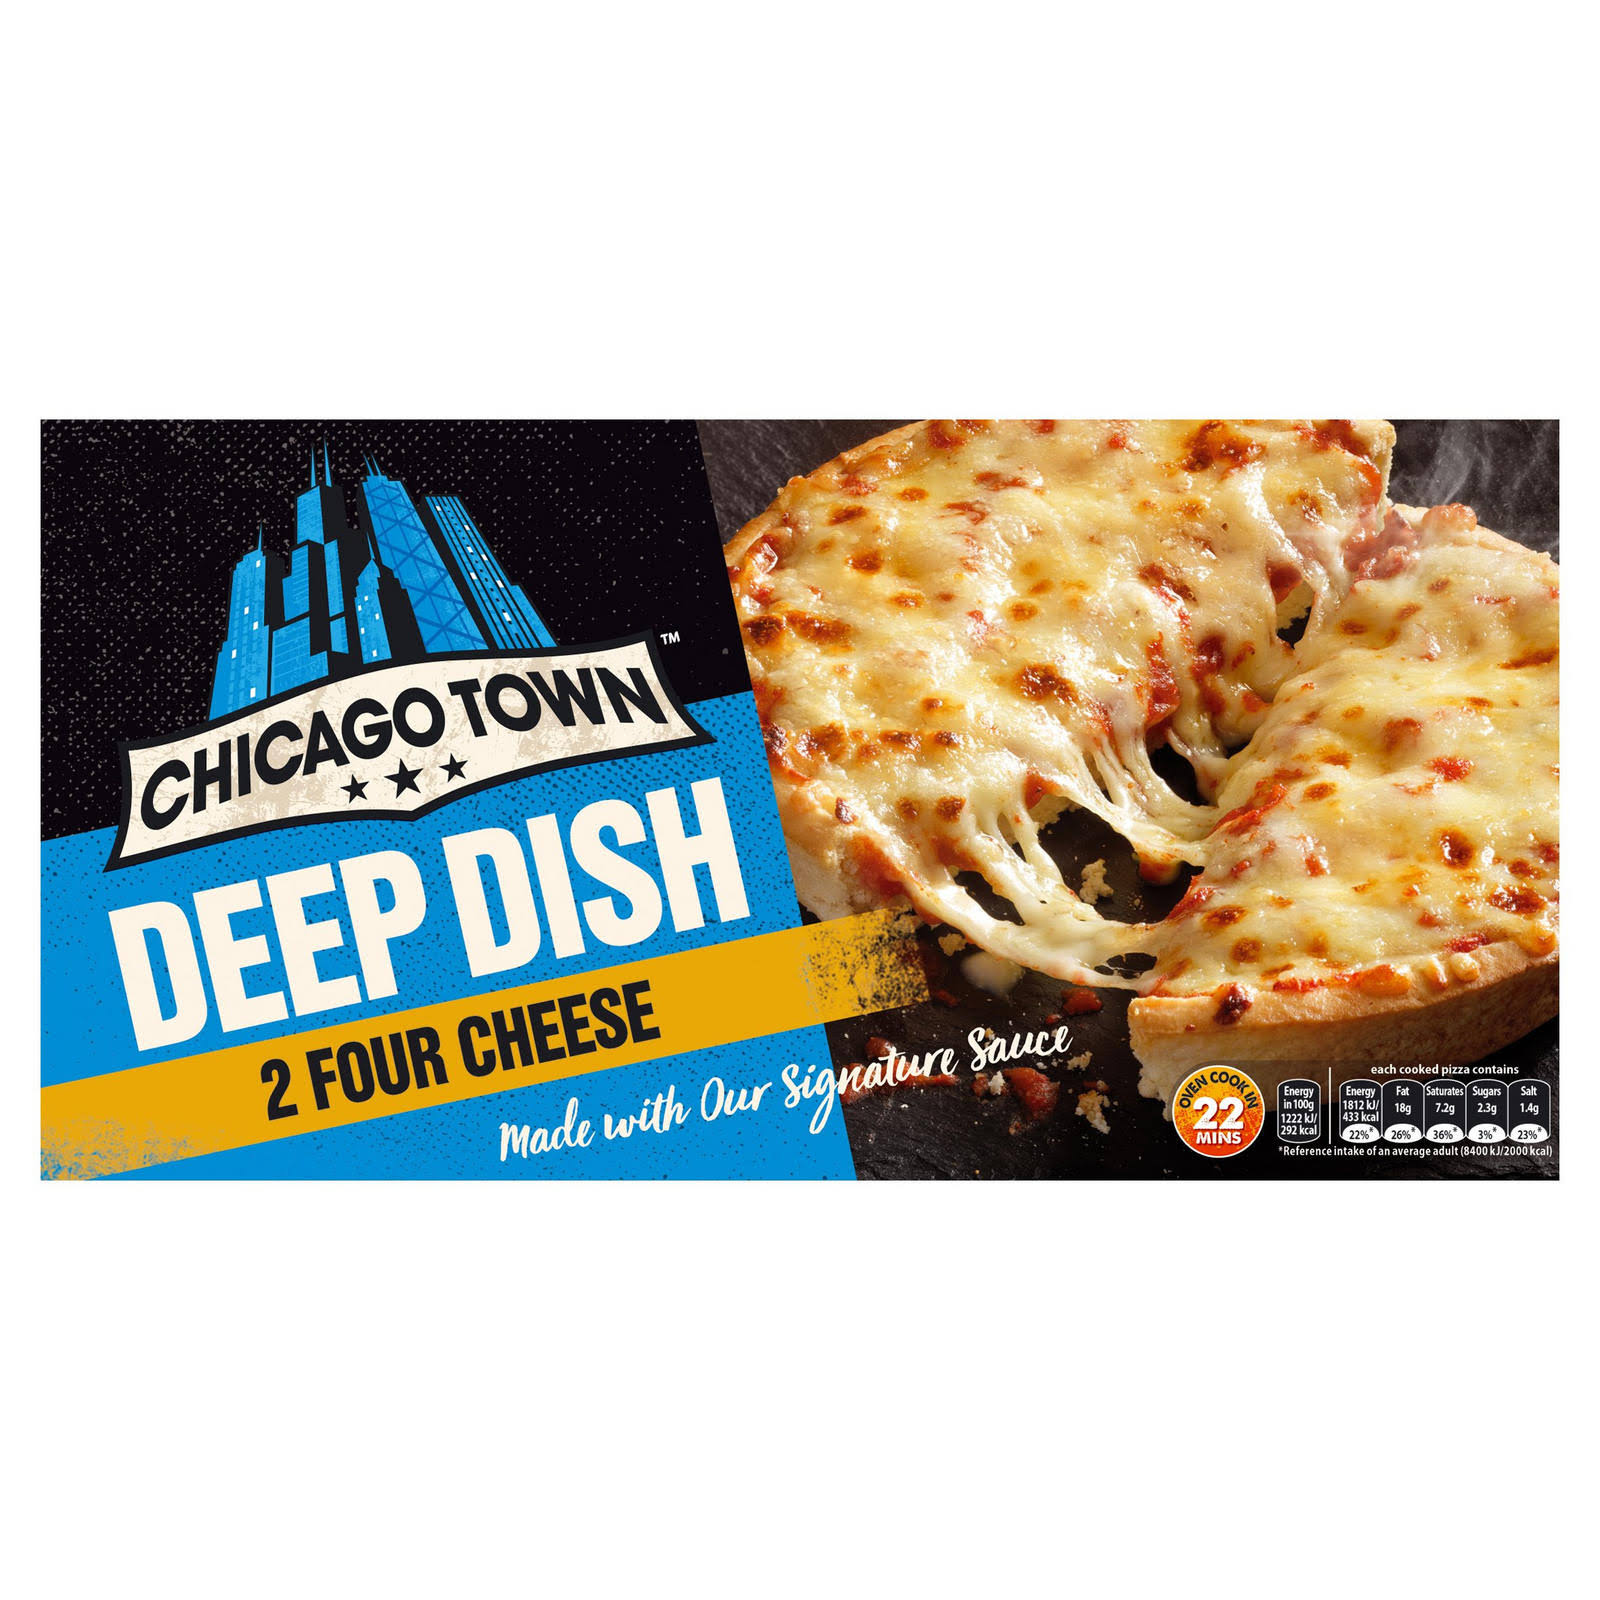 Chicago Town The Deep Dish Pizza - Four Cheese, 310g, 2pcs